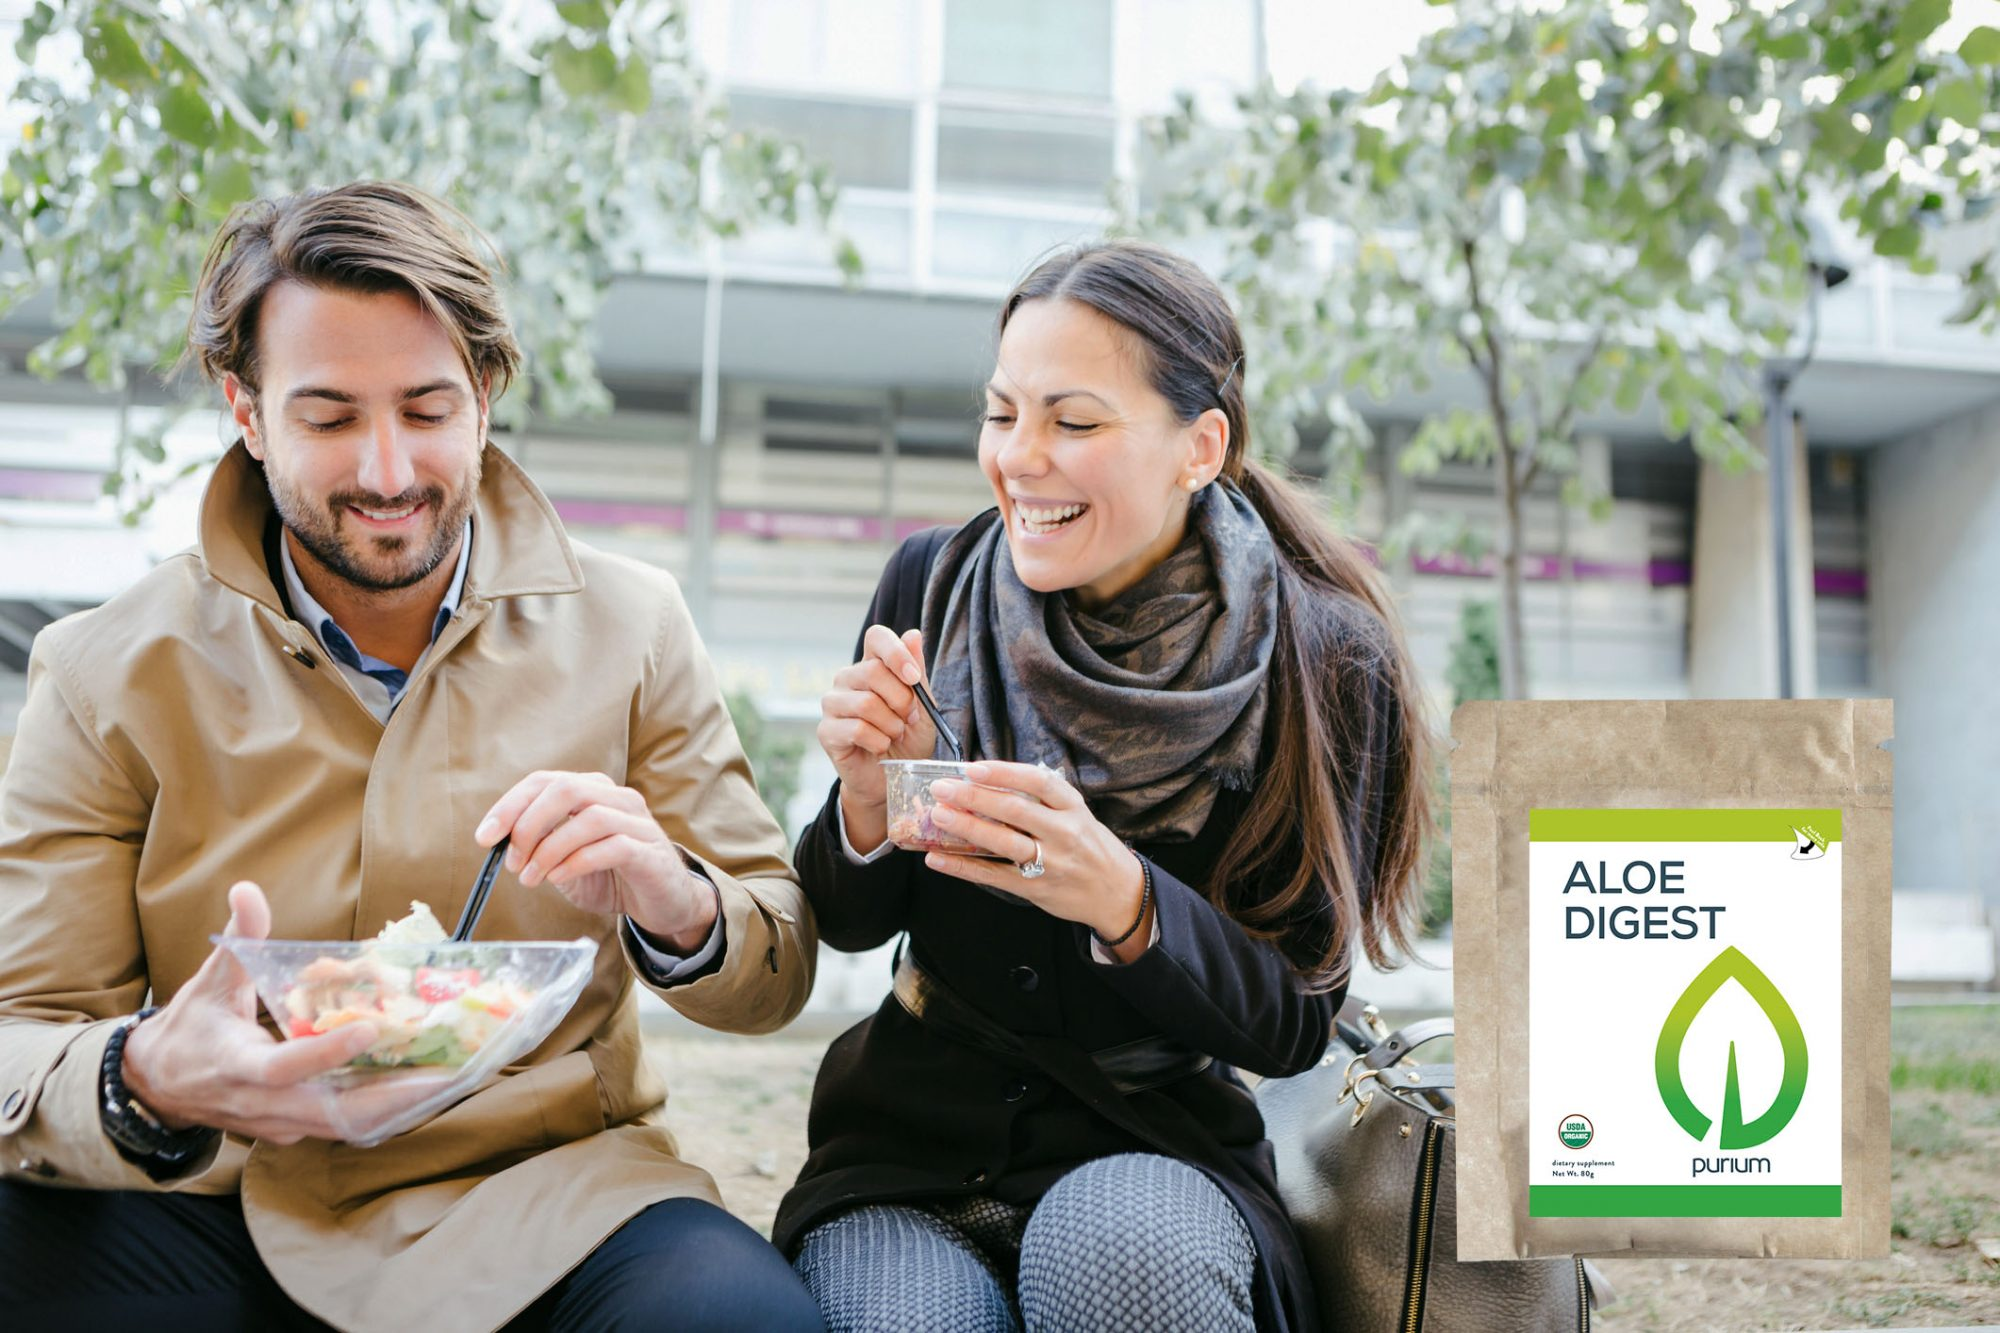 Aloe Digest: Digestive Support from Anywhere